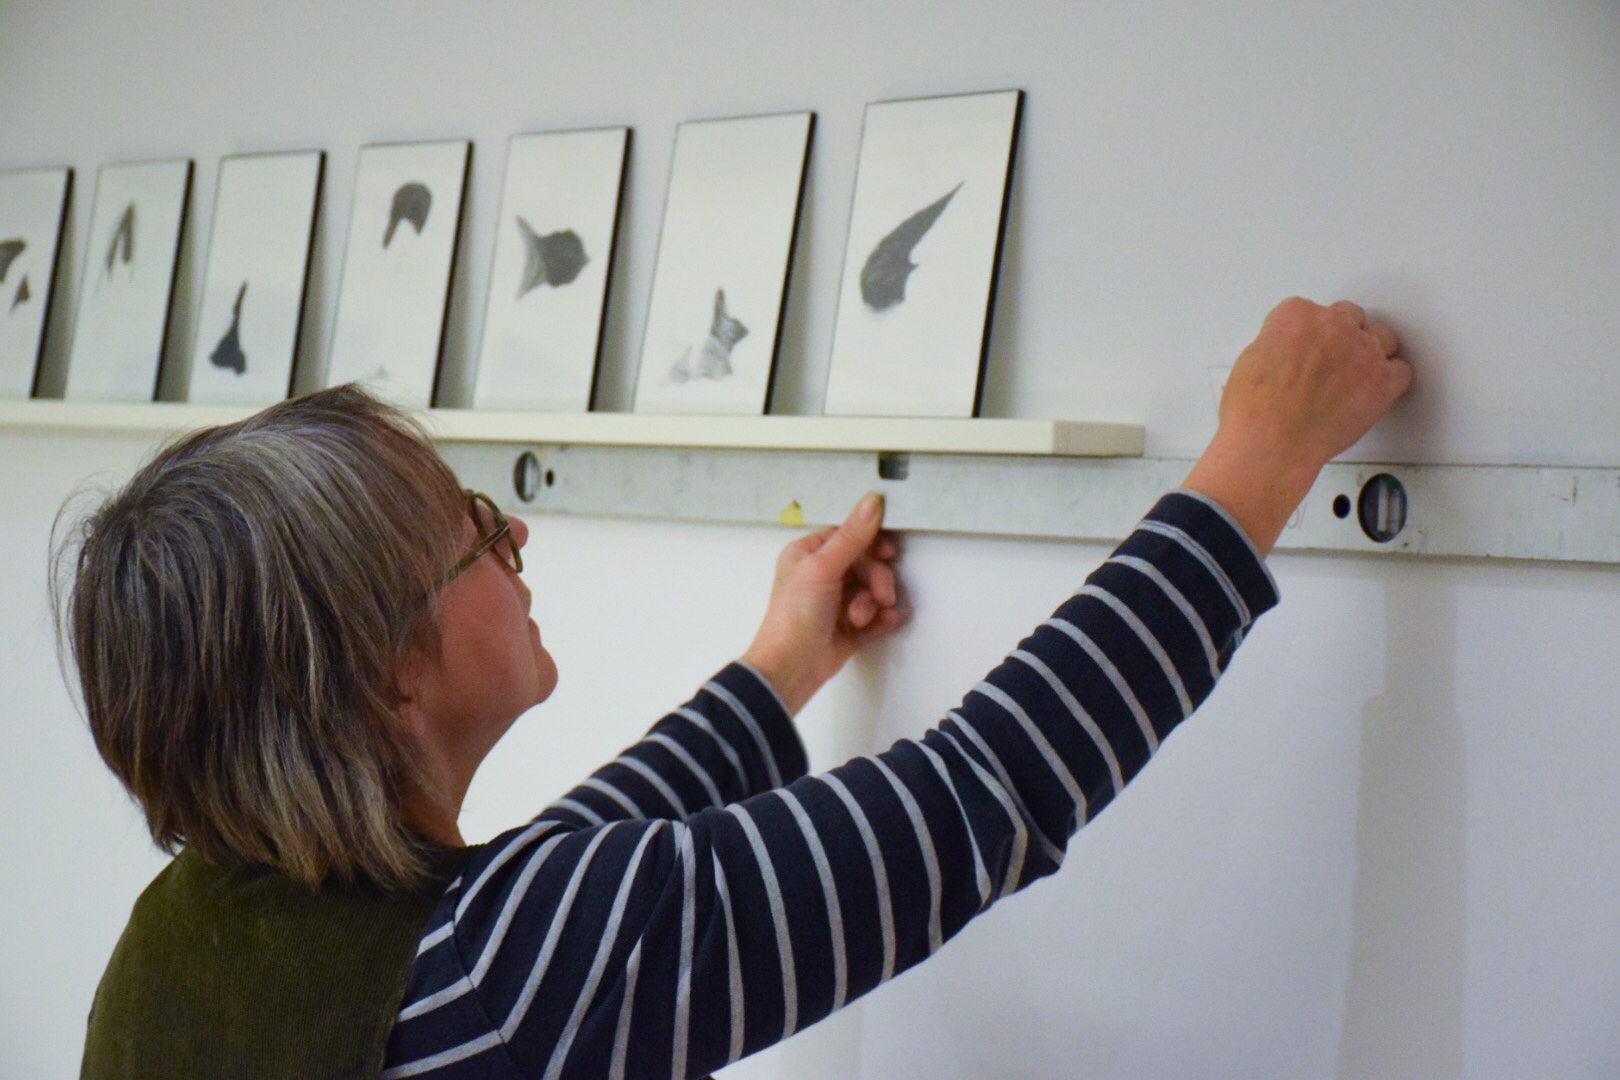 An artcurator measures the space on the wall.